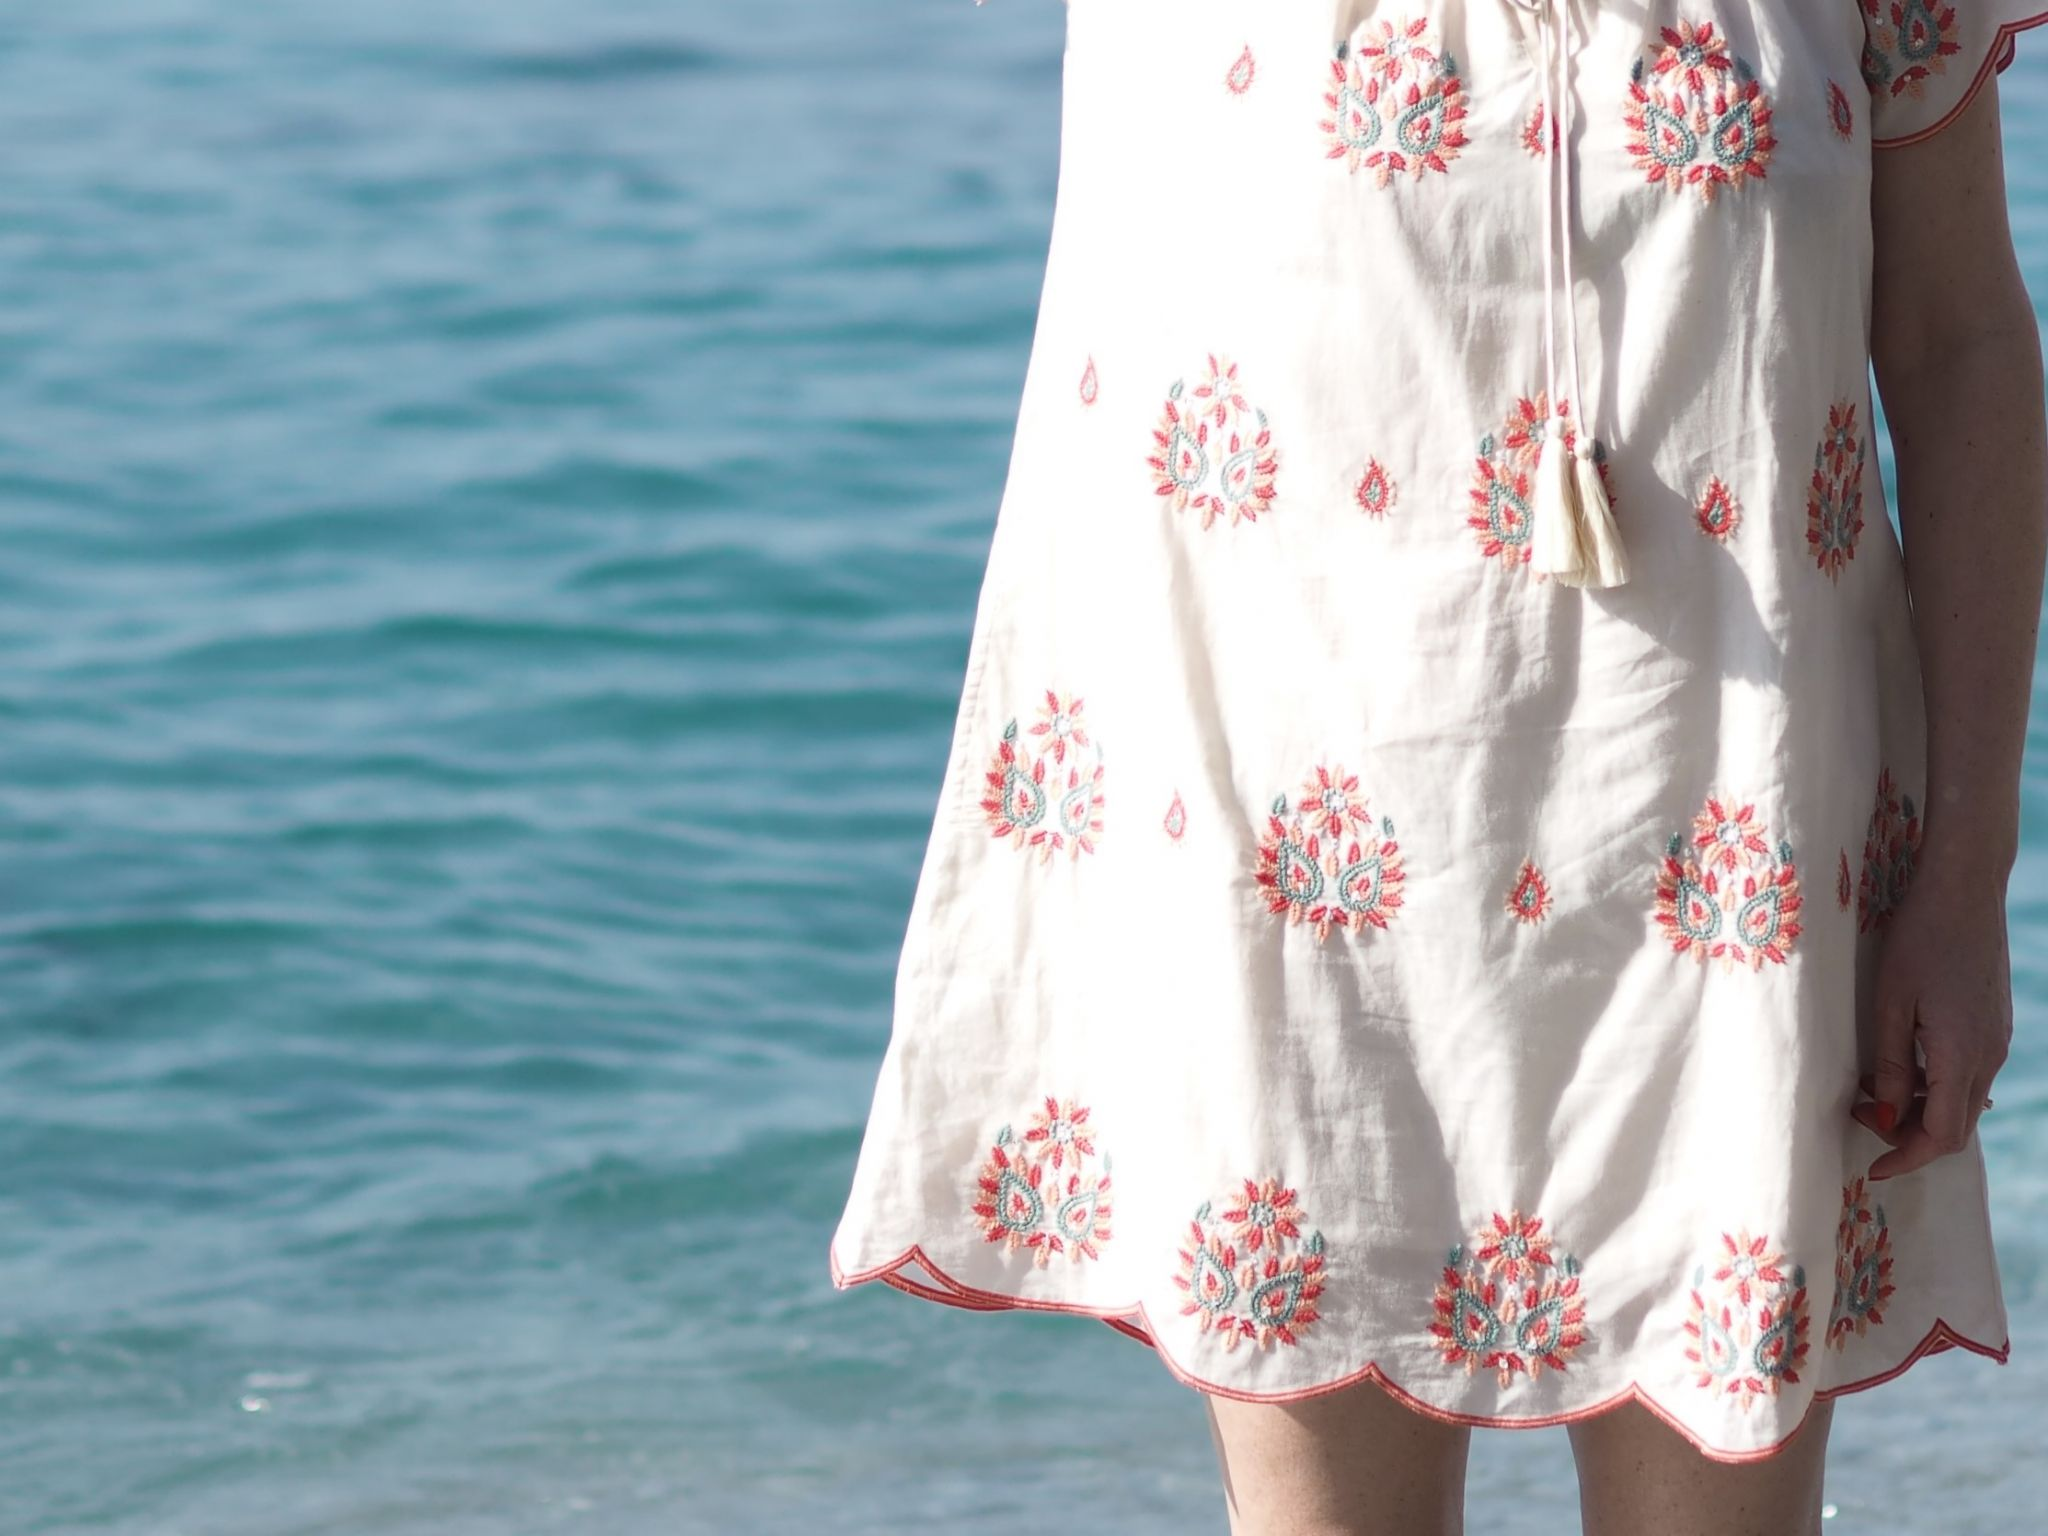 scalloped edge embroidered ethical beach dress